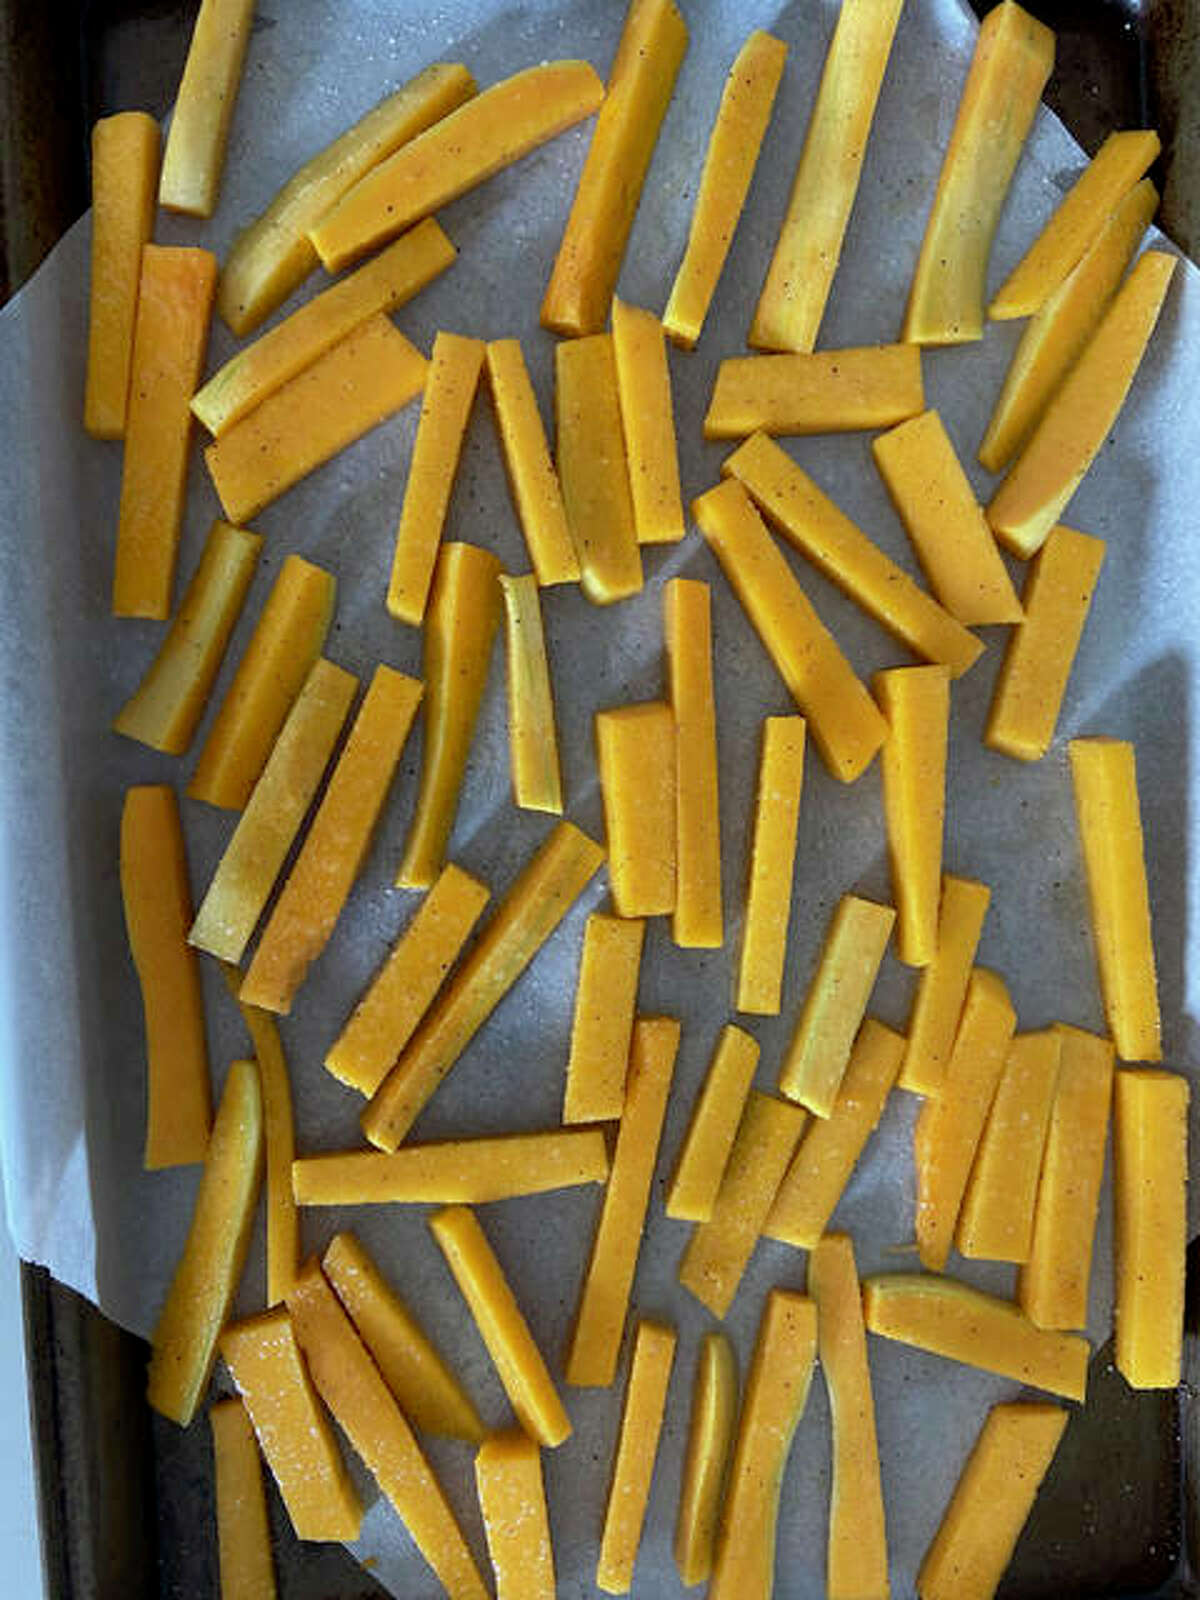 Butternut squash fries give you that crunch and can be healthier than most potato options, according to recipe creator Rachel Tritsch.